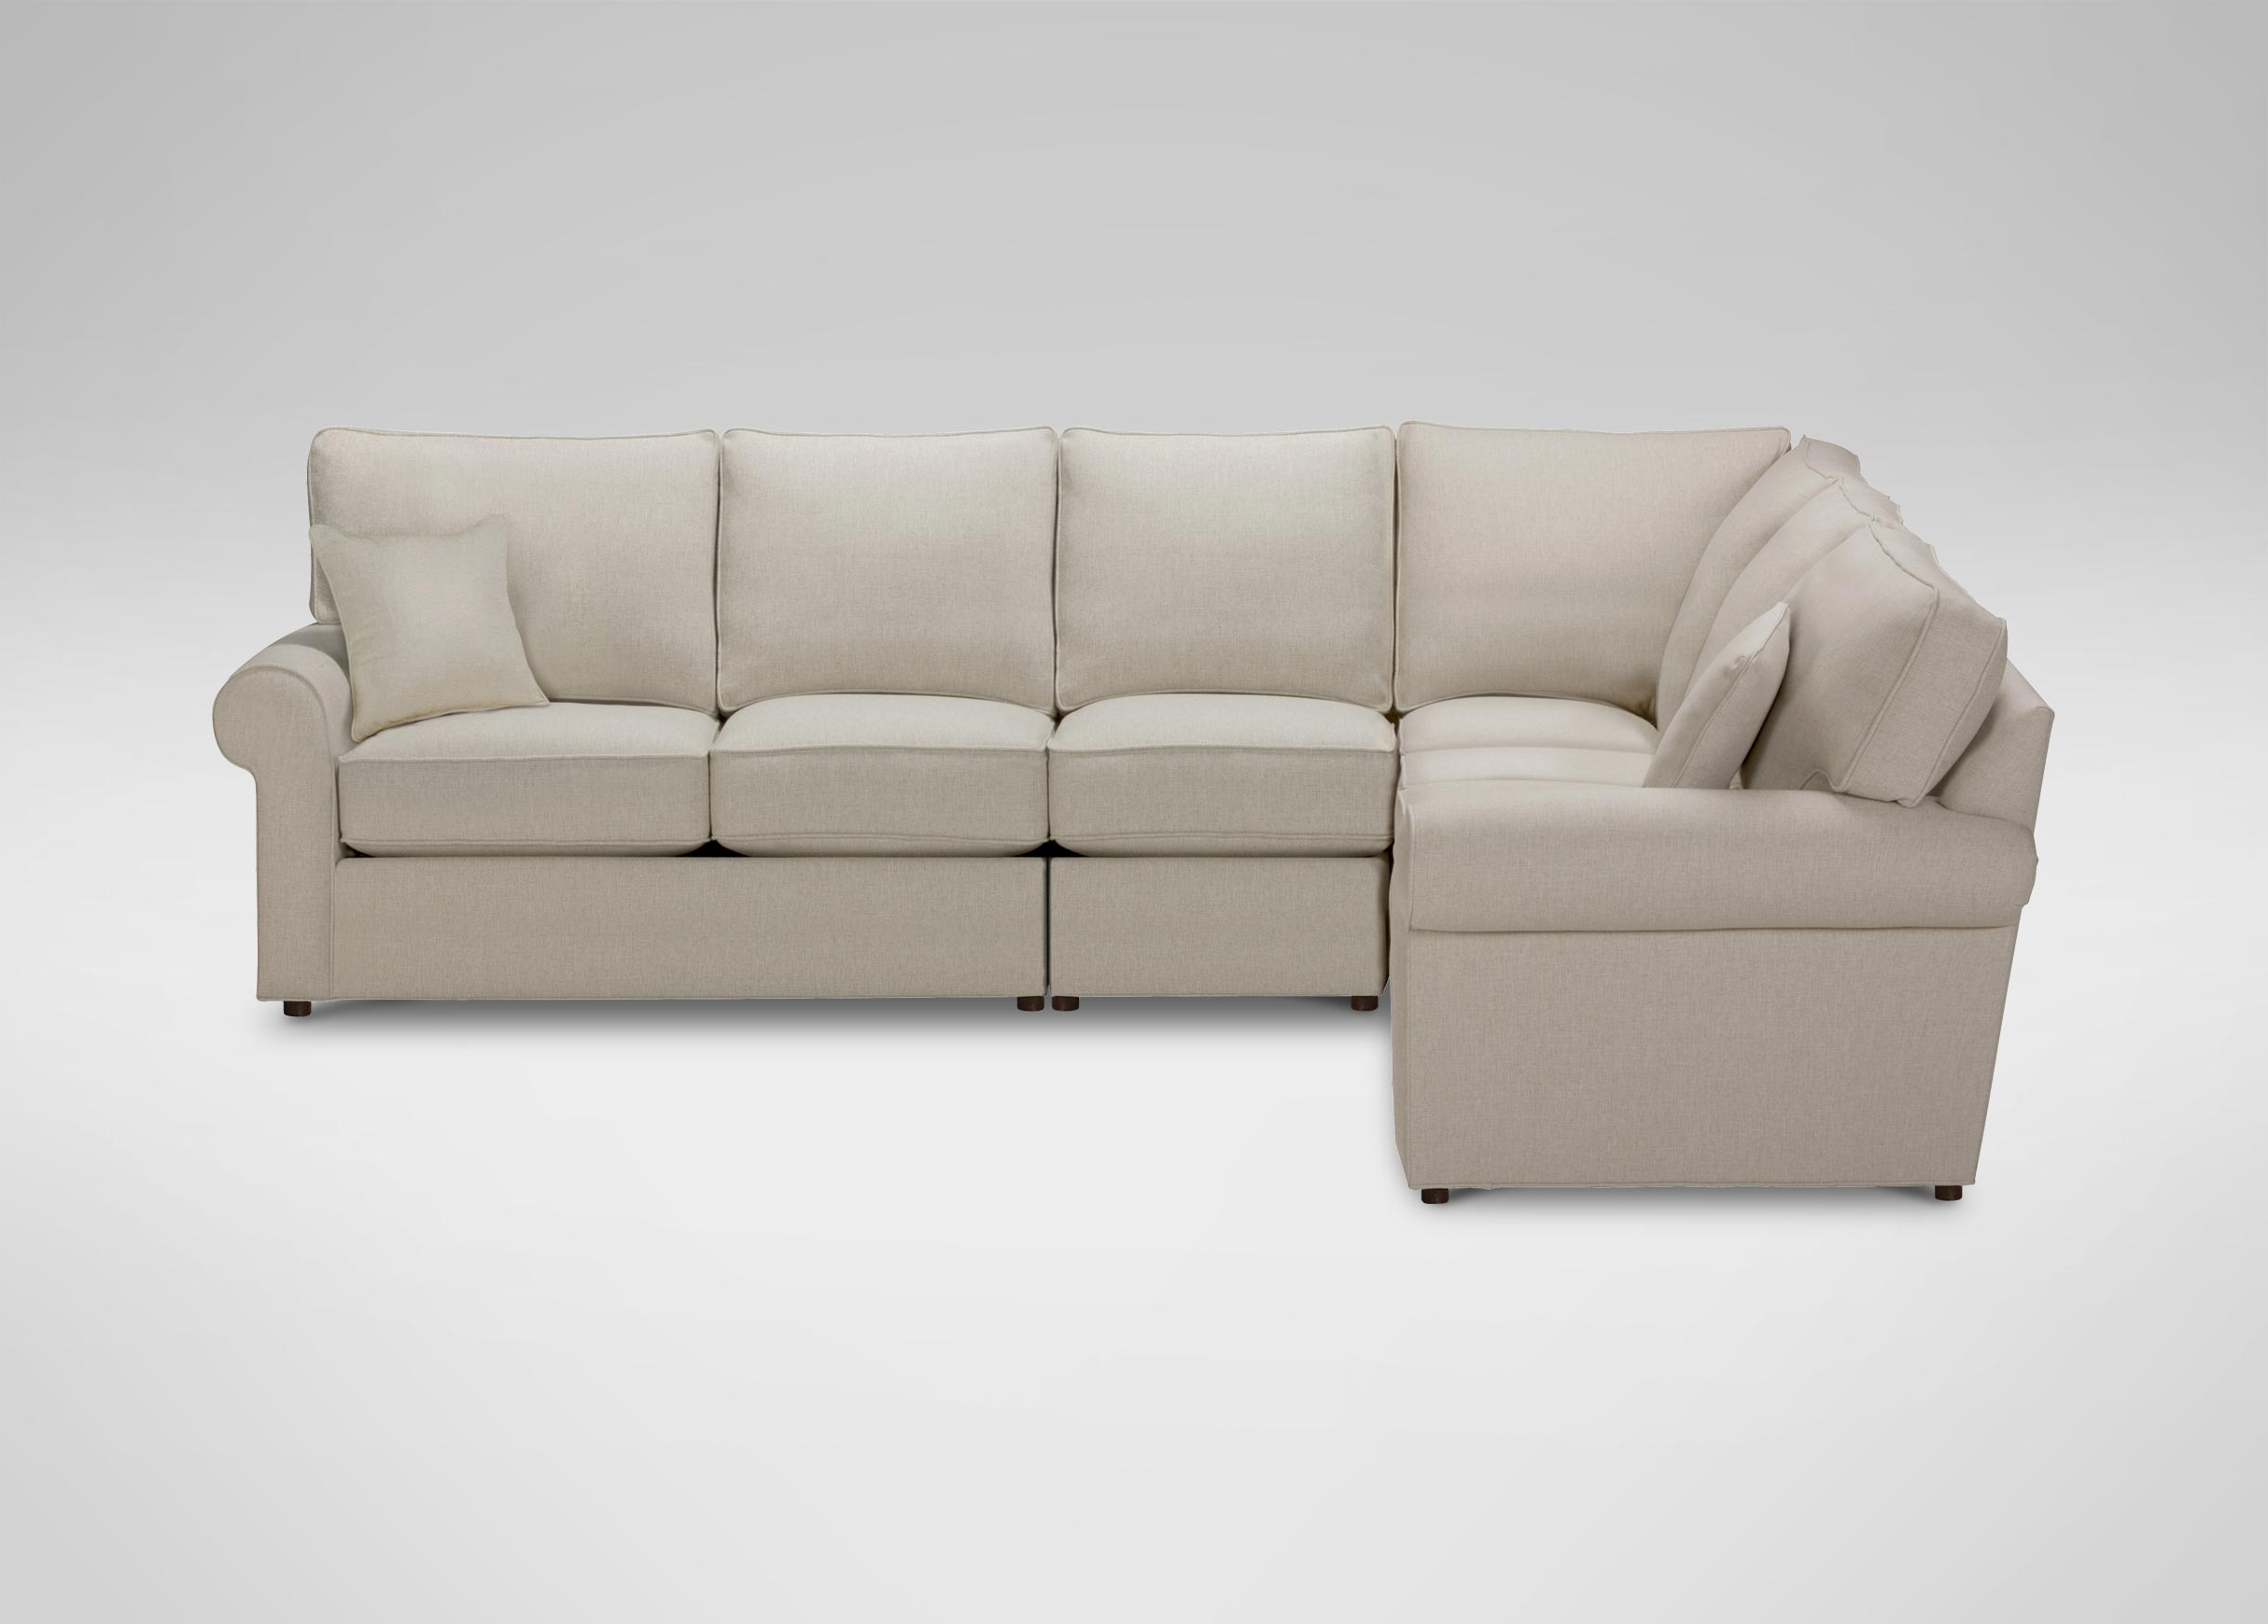 Ethan Allen For Sectional Sofas At Ethan Allen (Gallery 20 of 20)